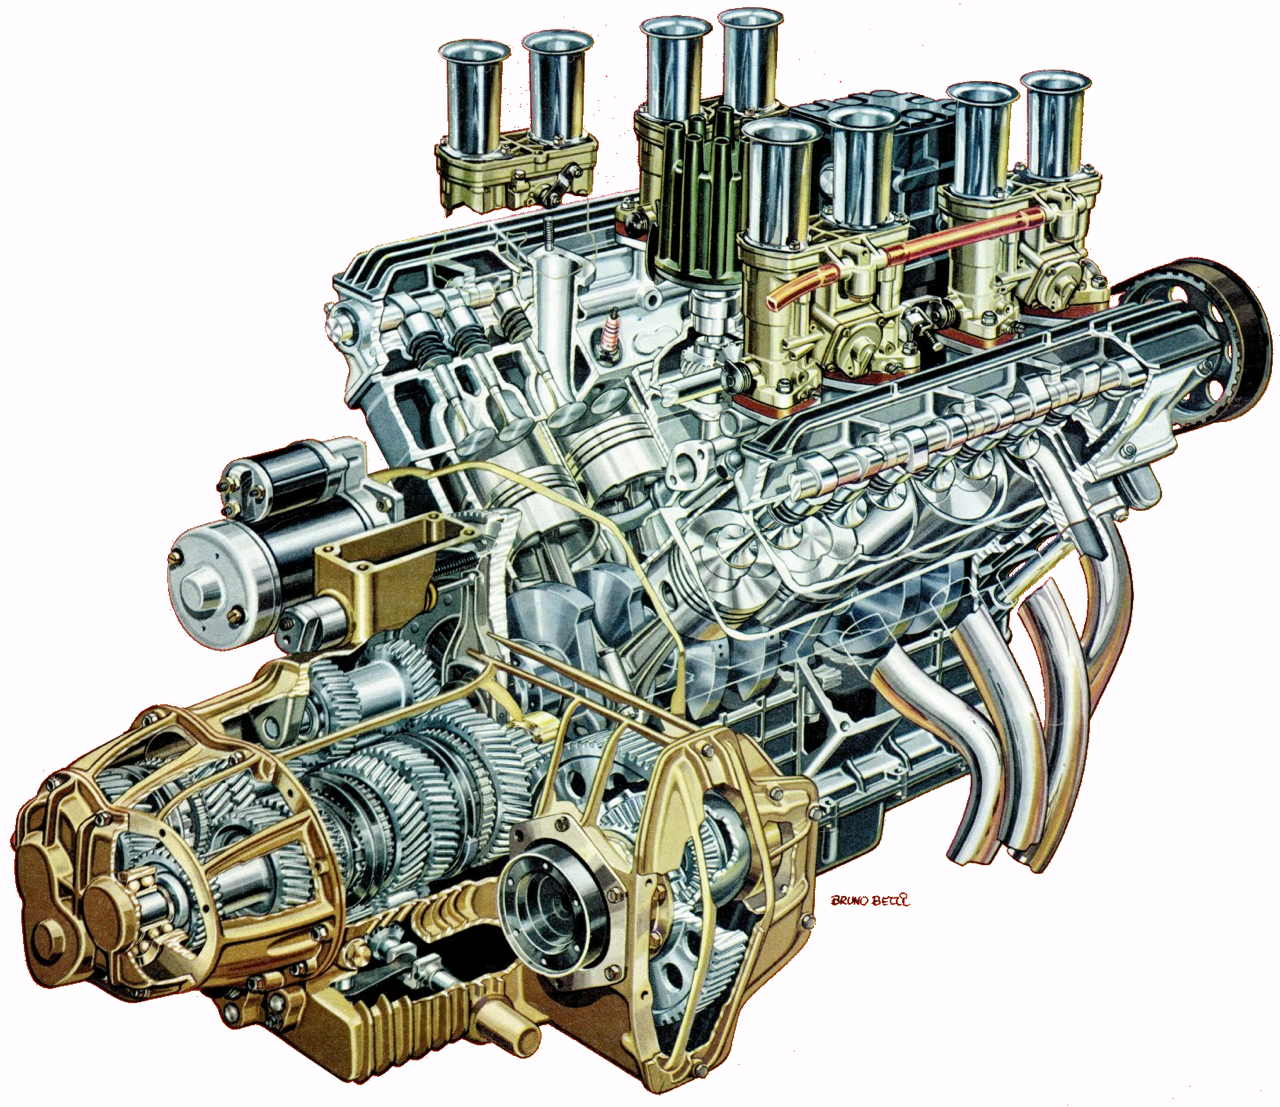 Car Engine Drawing At Free For Personal Use Alfa Romeo Spider Diagram 1280x1107 V8 Cutaway Illustration Race Engines Amp Cutaways